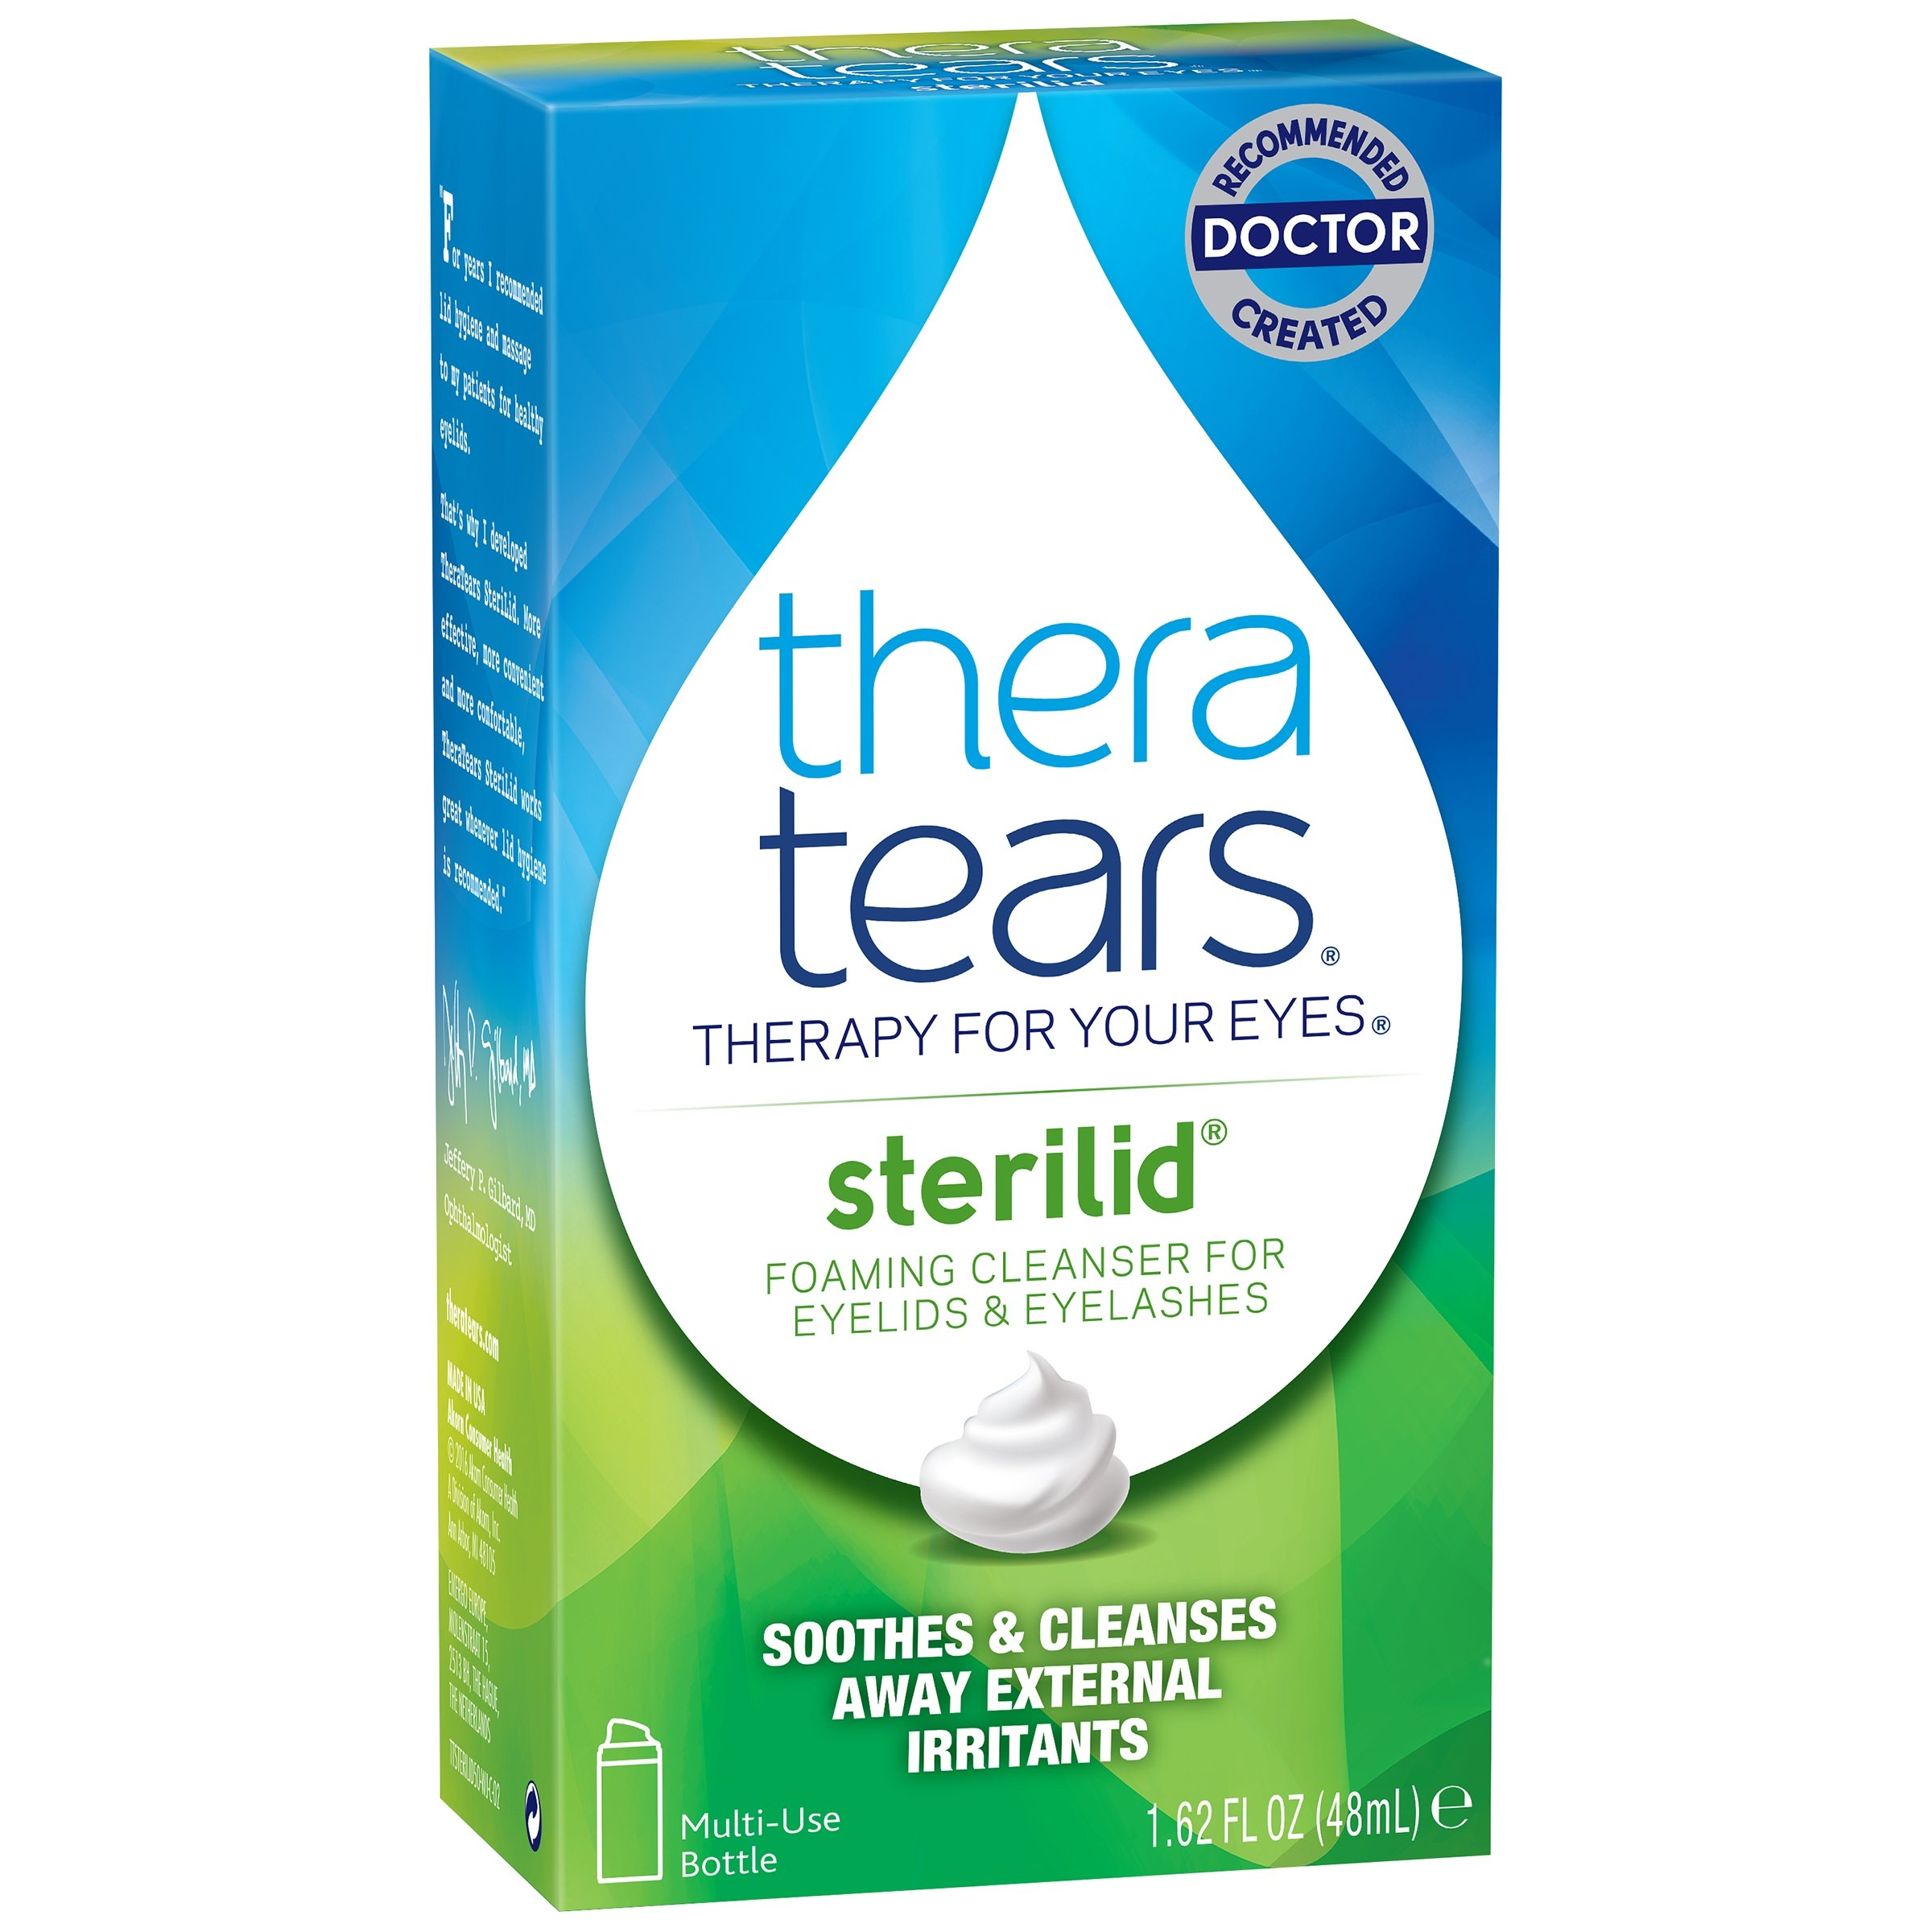 TheraTears Sterilid Eyelid Cleanser, Multi. SP Pack of 4 ( 6.48 FL OZ Total ) Thera-kr by Thera Tears